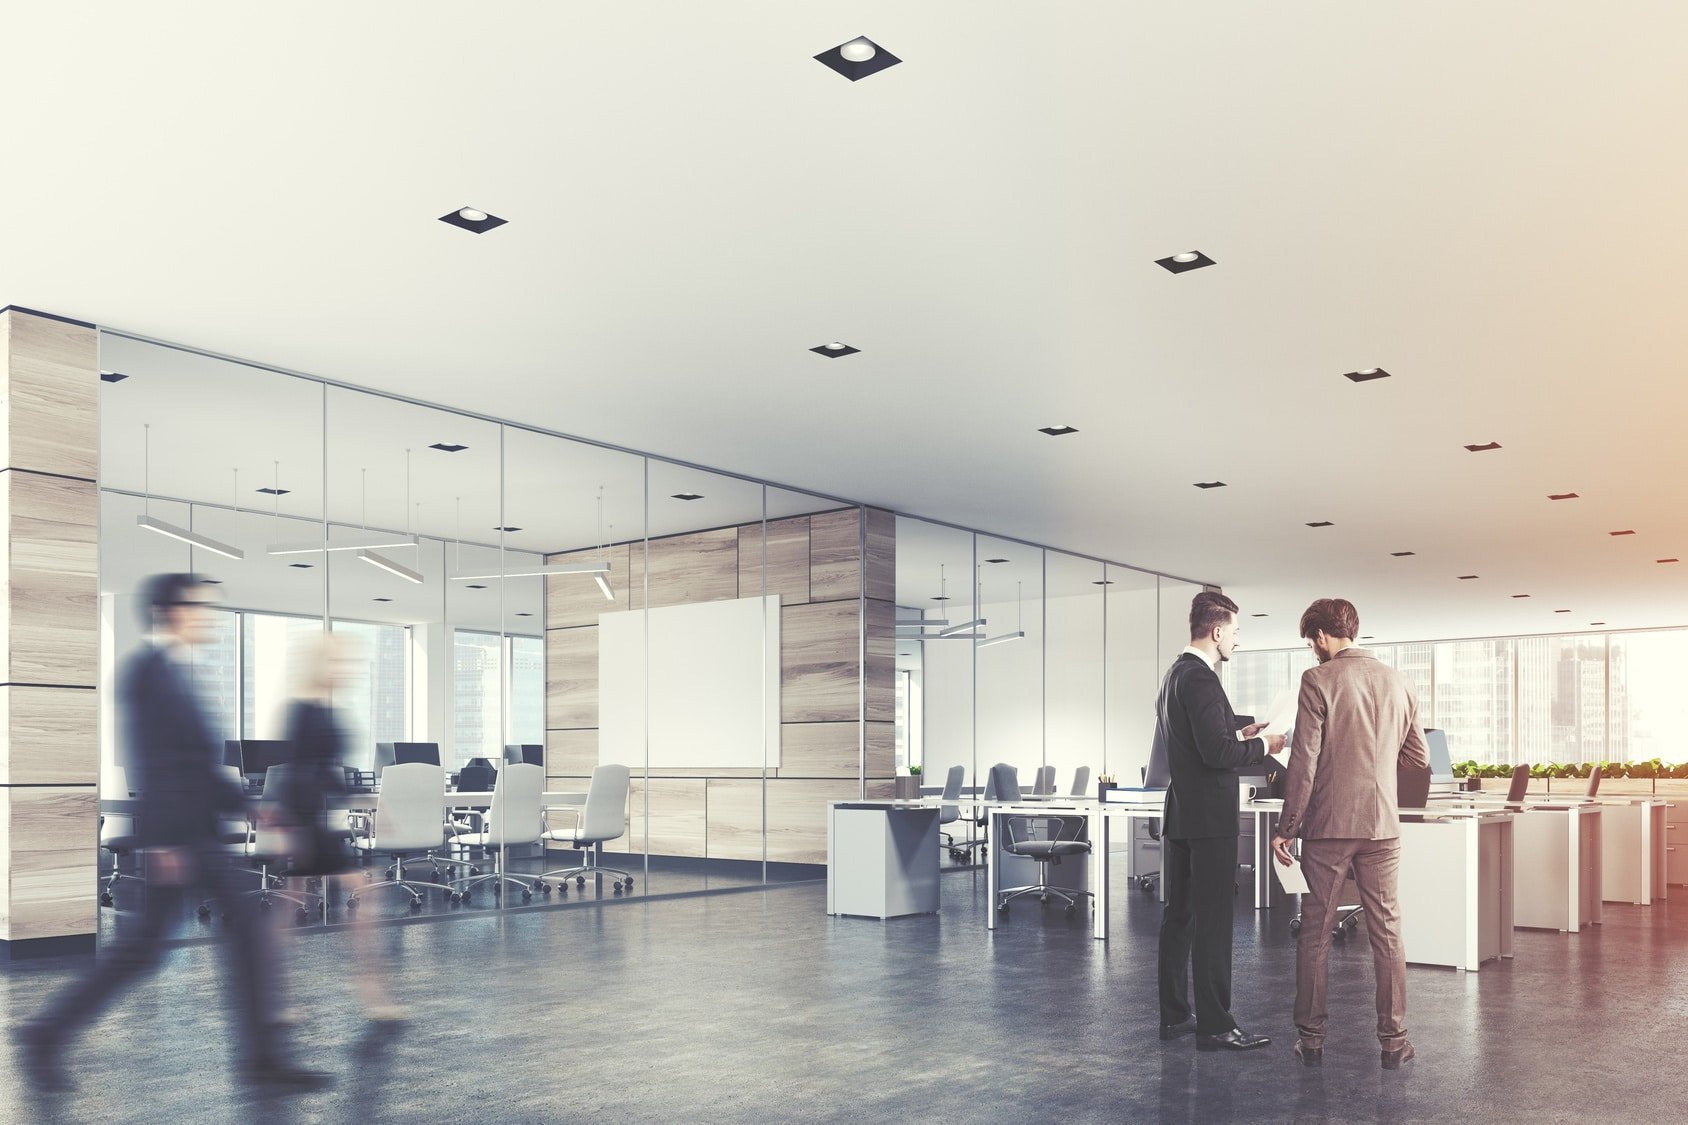 Two conference rooms with glass and wooden walls and an open space open office area. A poster, business people. 3d rendering mock up toned image